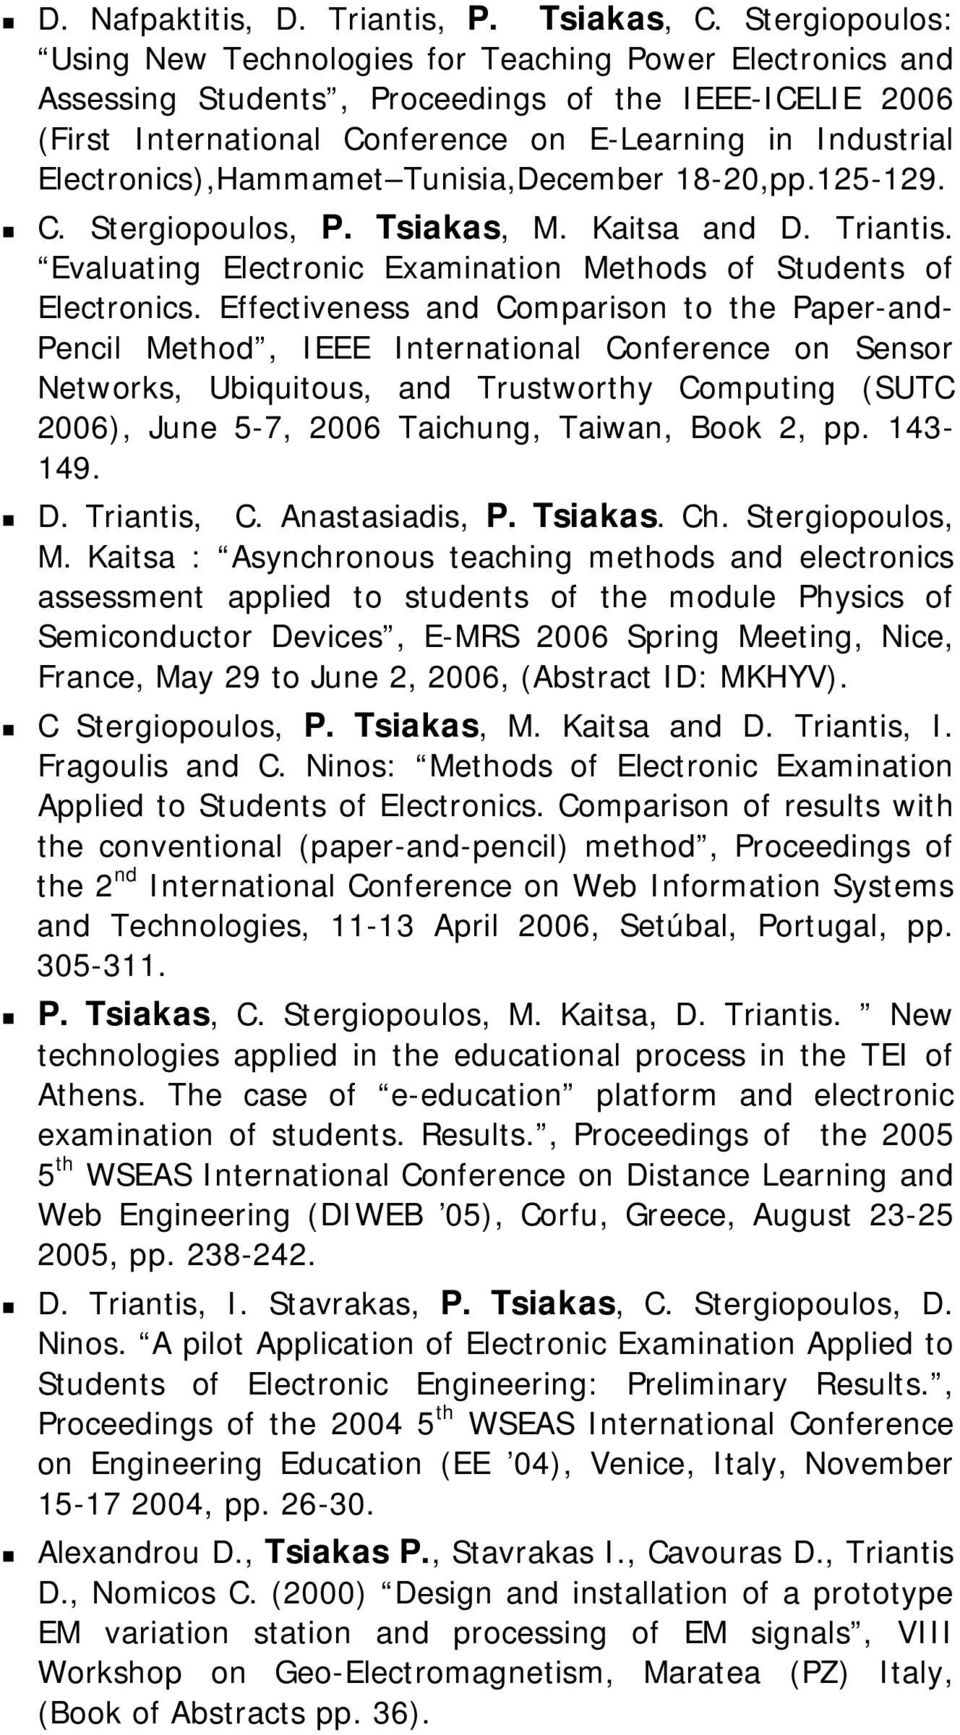 Electronics),Hammamet Tunisia,December 18-20,pp.125-129. C. Stergiopoulos, P. Tsiakas, M. Kaitsa and D. Triantis. Evaluating Electronic Examination Methods of Students of Electronics.